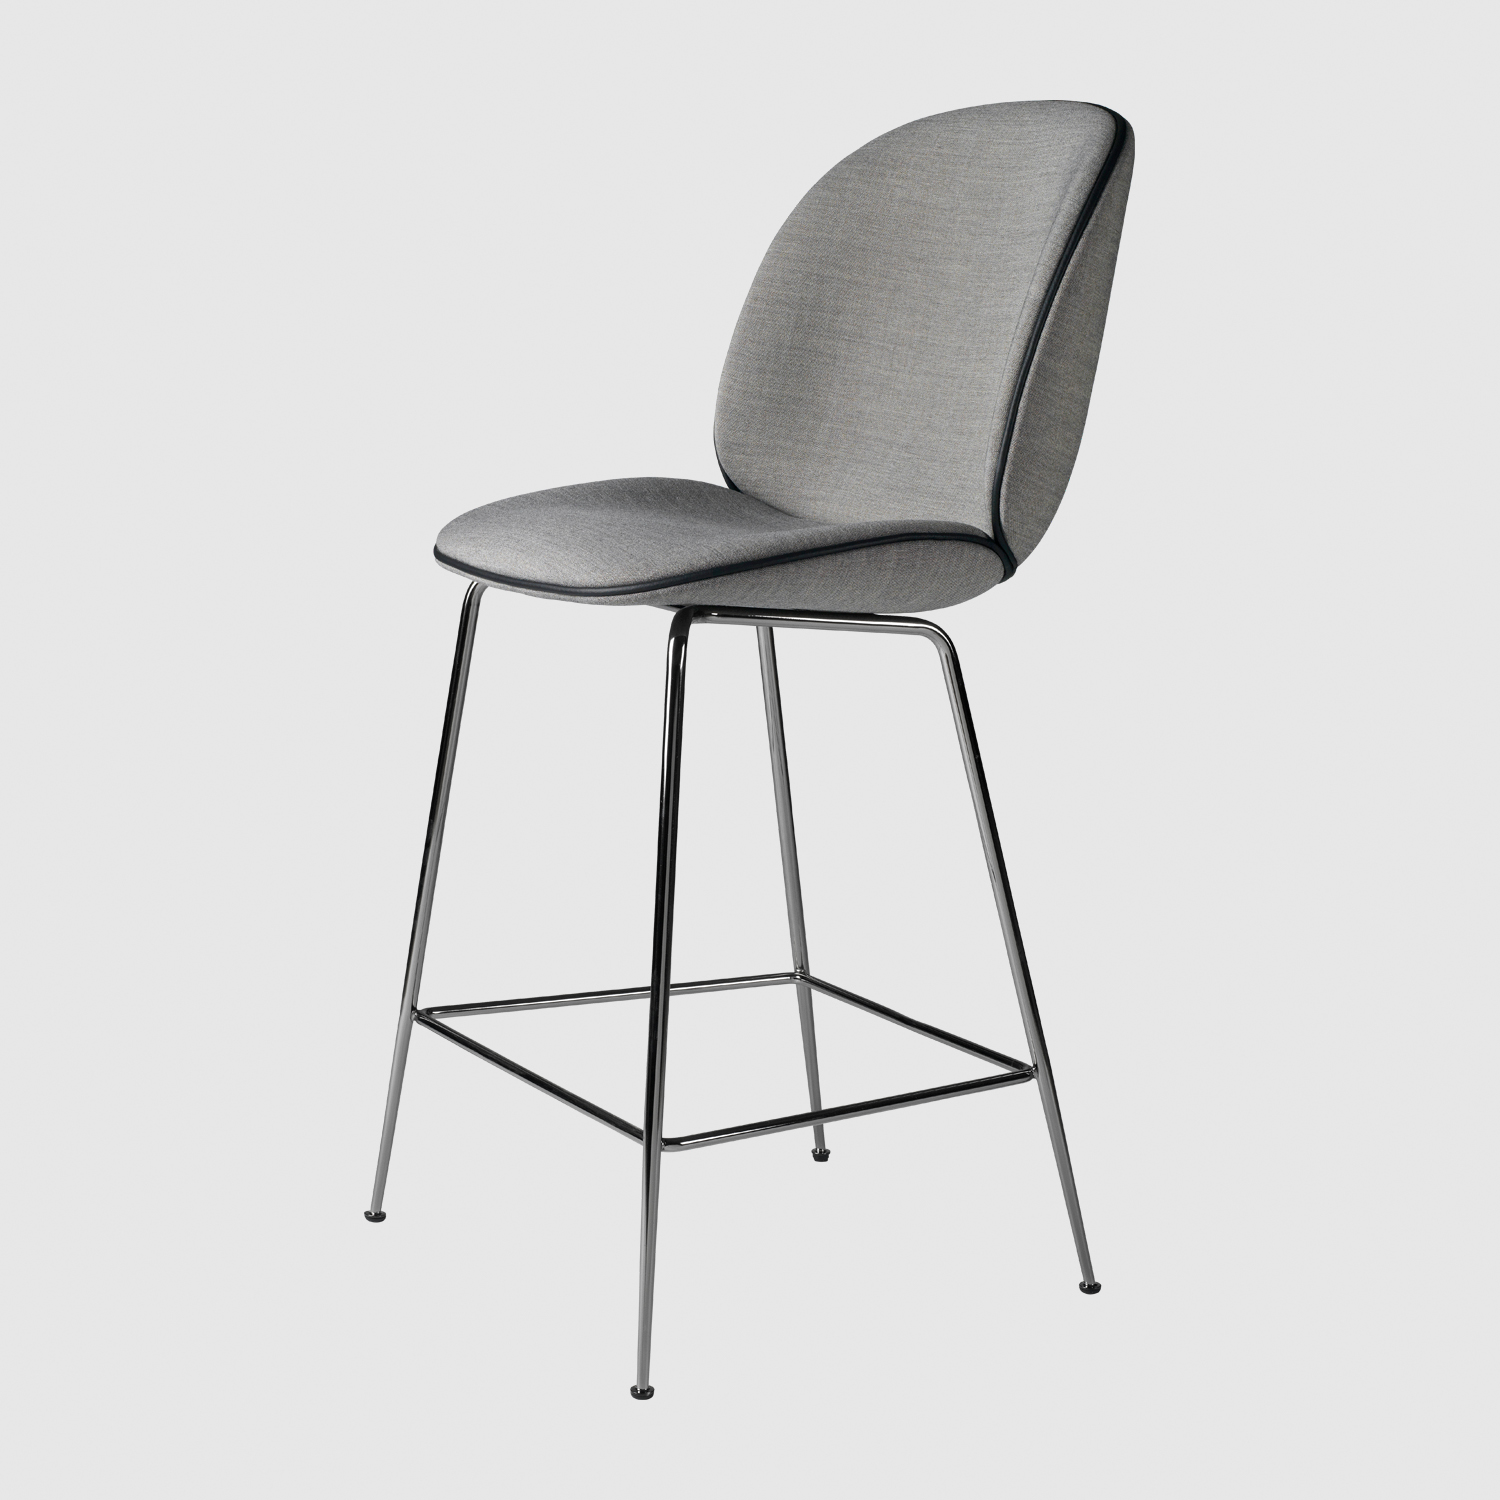 Counter Chair: seating 65cm, 53 x 54 x 108cm